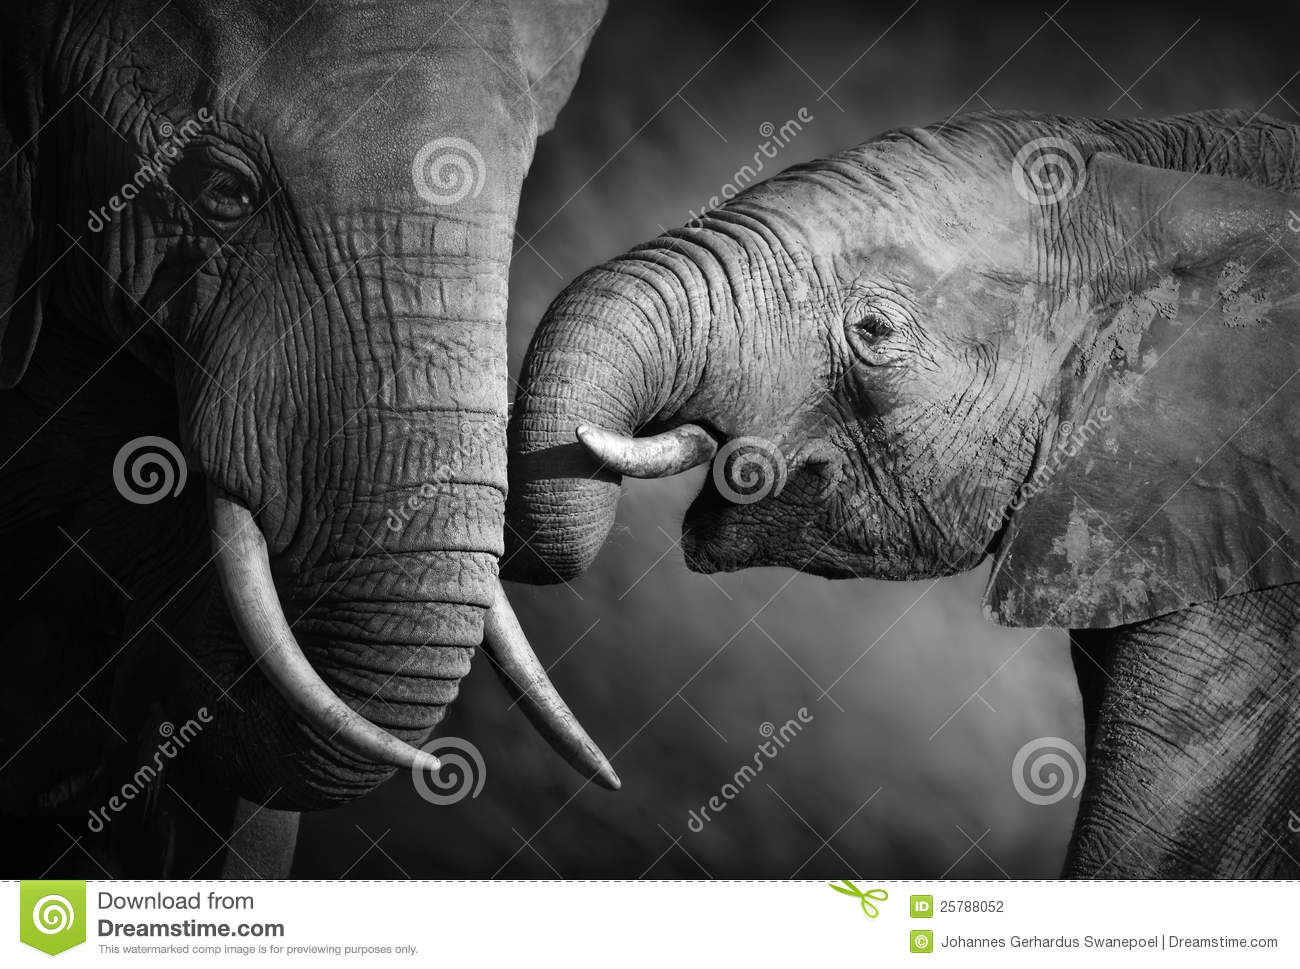 Elephant affection (Artistic processing)